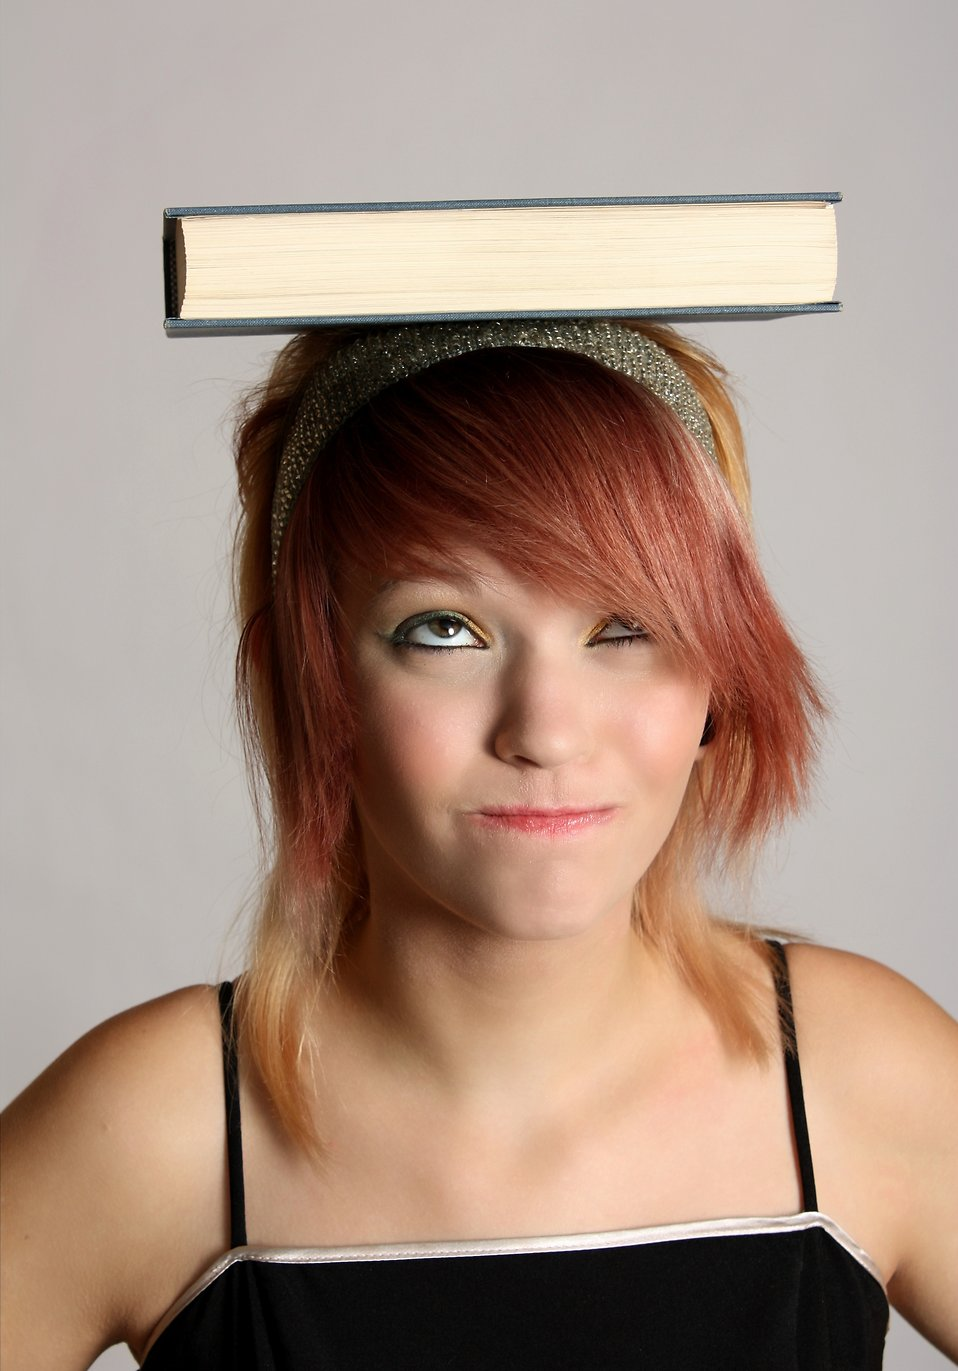 A beautiful young girl balancing a book on her head : Free Stock Photo